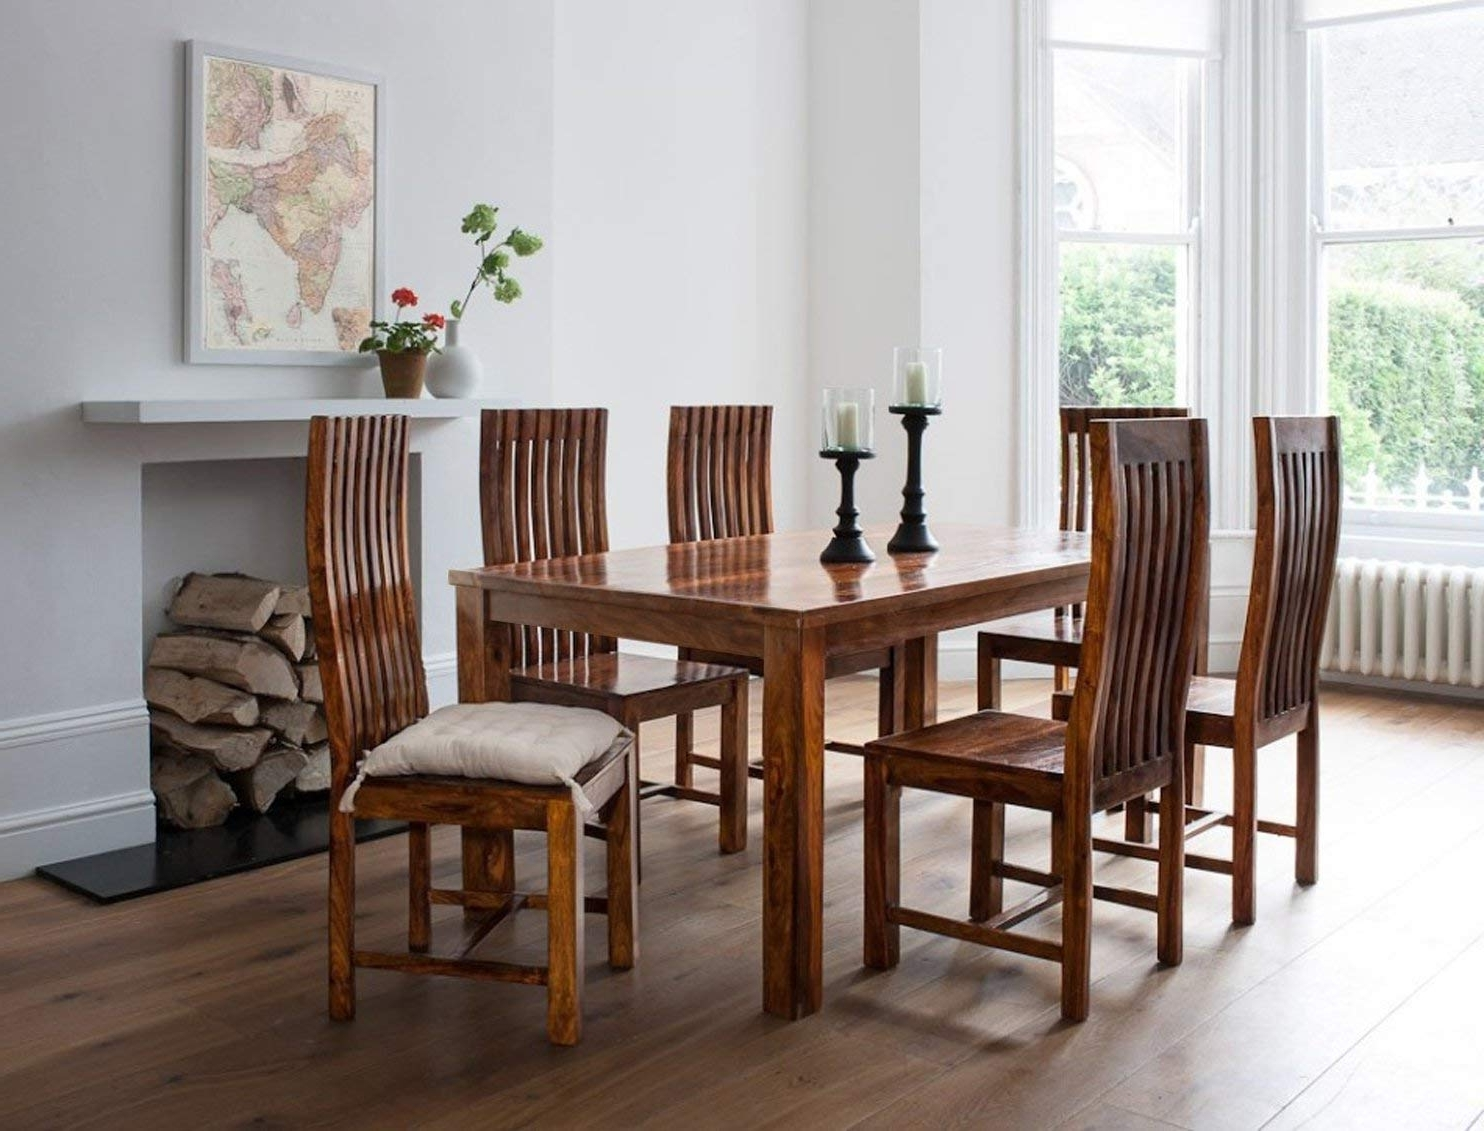 Lifeestyle Handcrafted Sheesham Wood 6 Seater Dining Set (Honey In Latest Kitchen Dining Tables And Chairs (View 13 of 25)